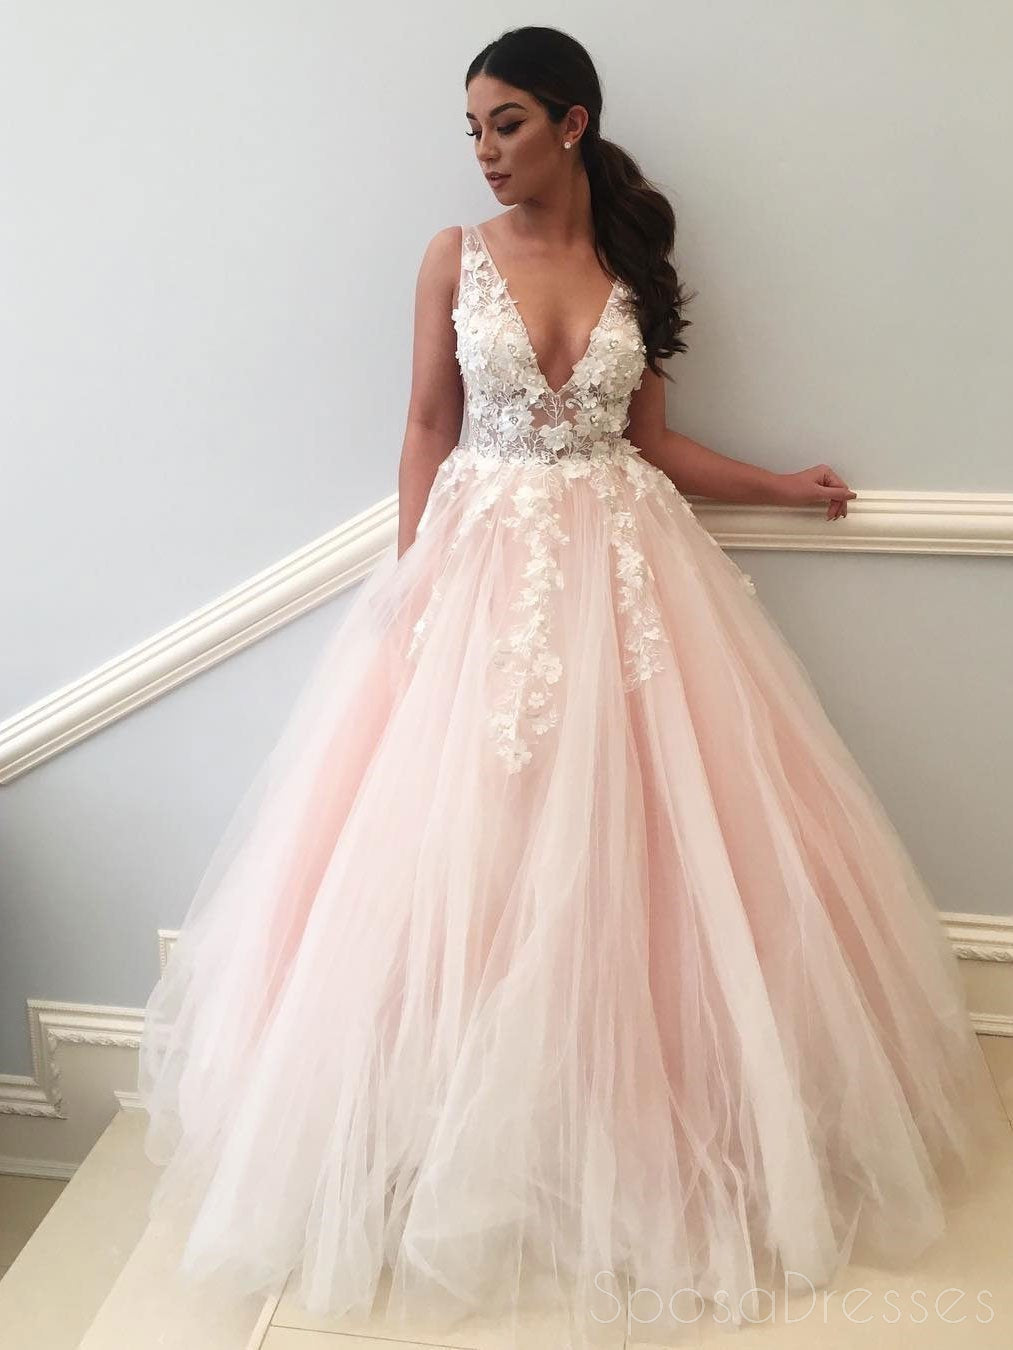 Custom Prom Dresses Sposadresses